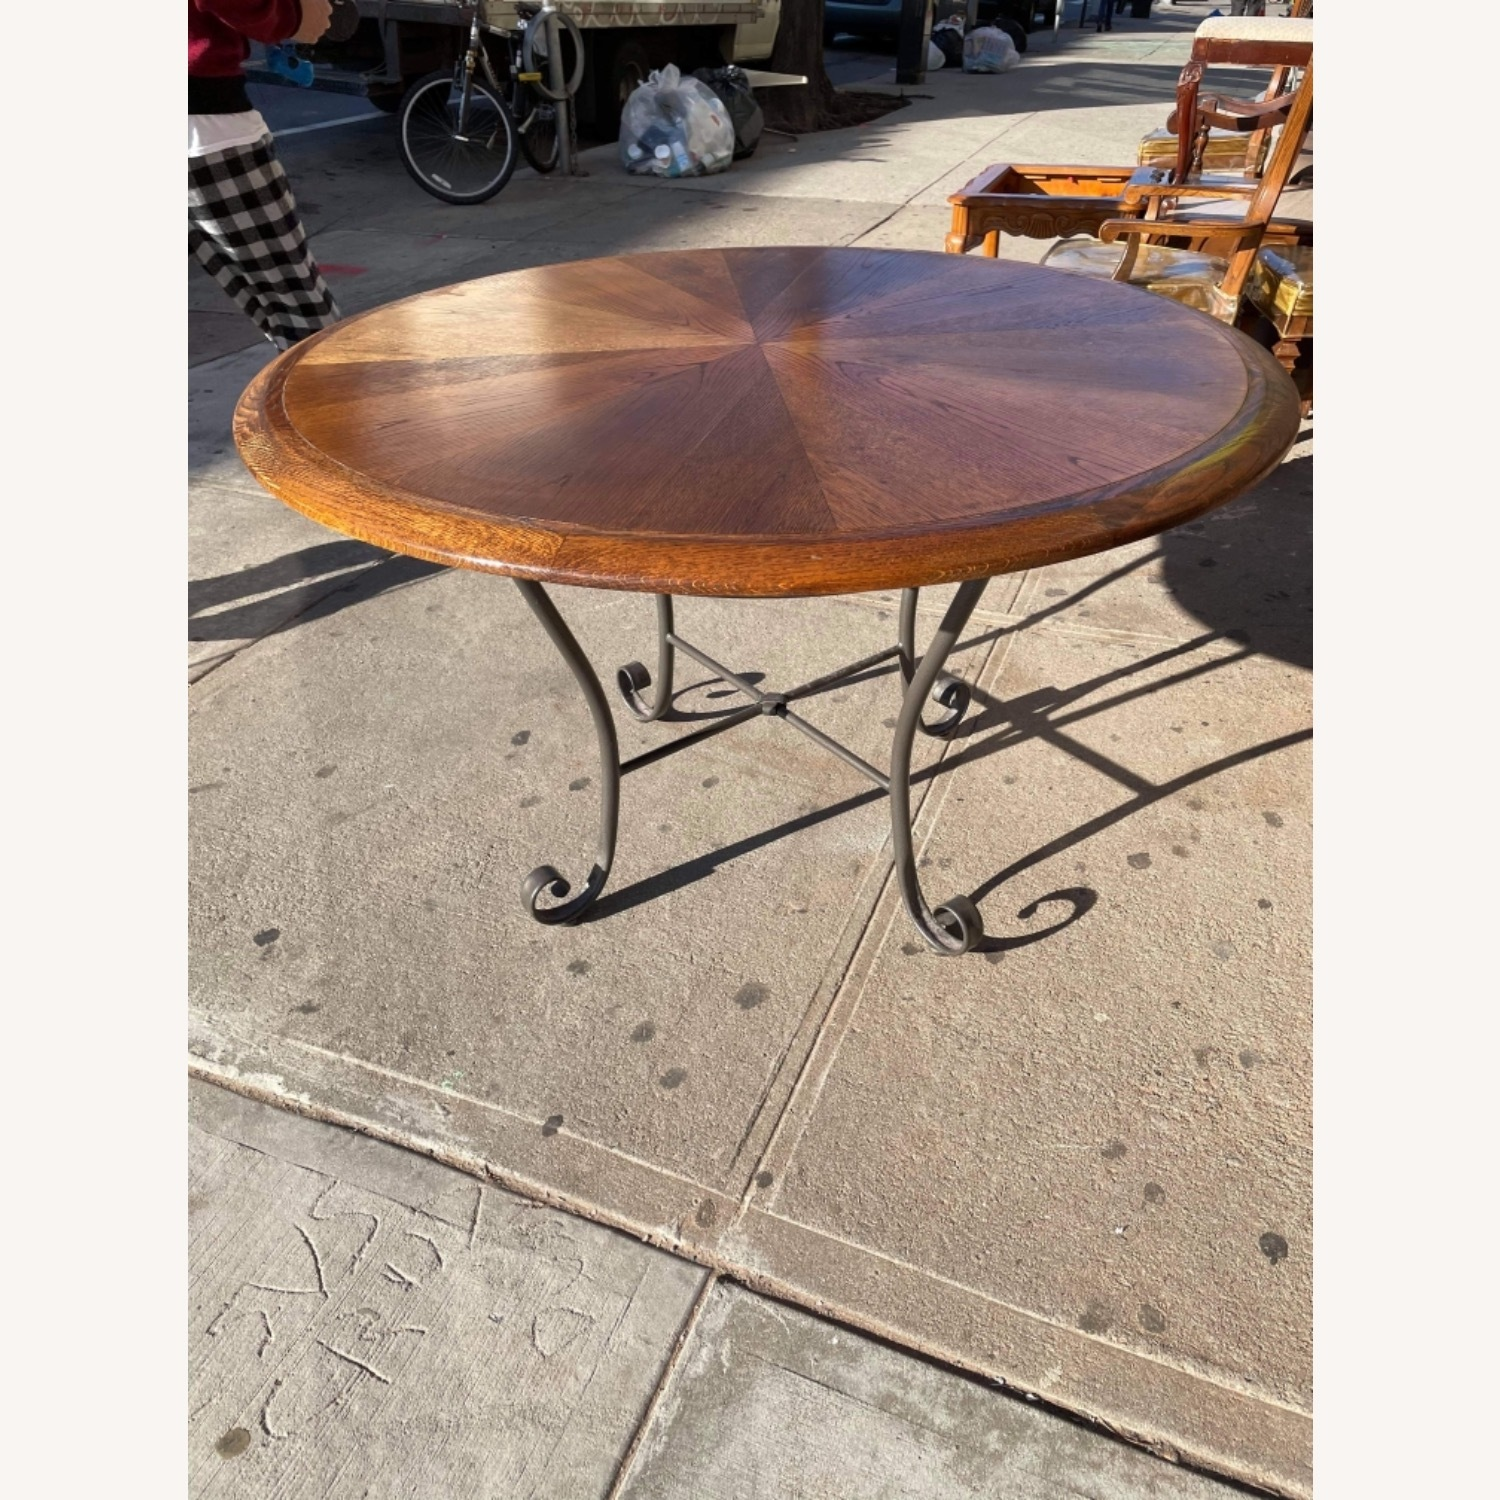 Vintage 1970s Wood & Metal Round Table - image-1